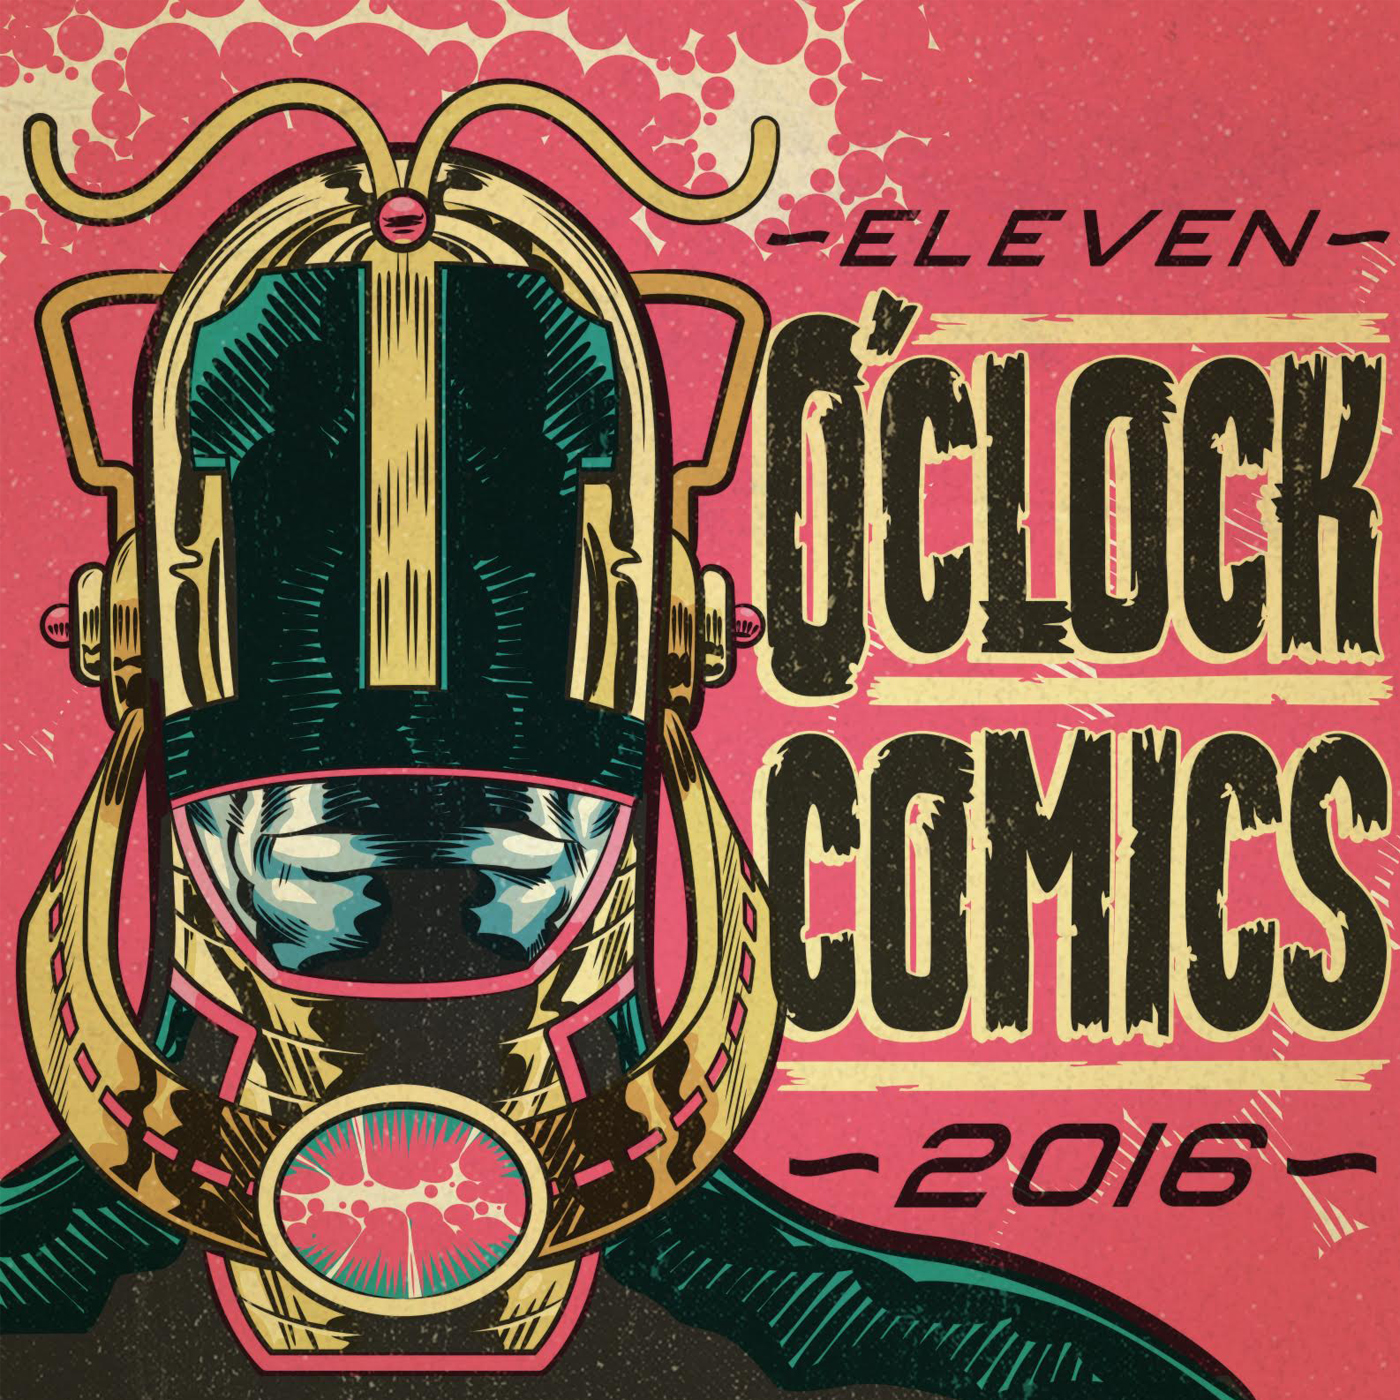 11 O'Clock Comics Episode 426